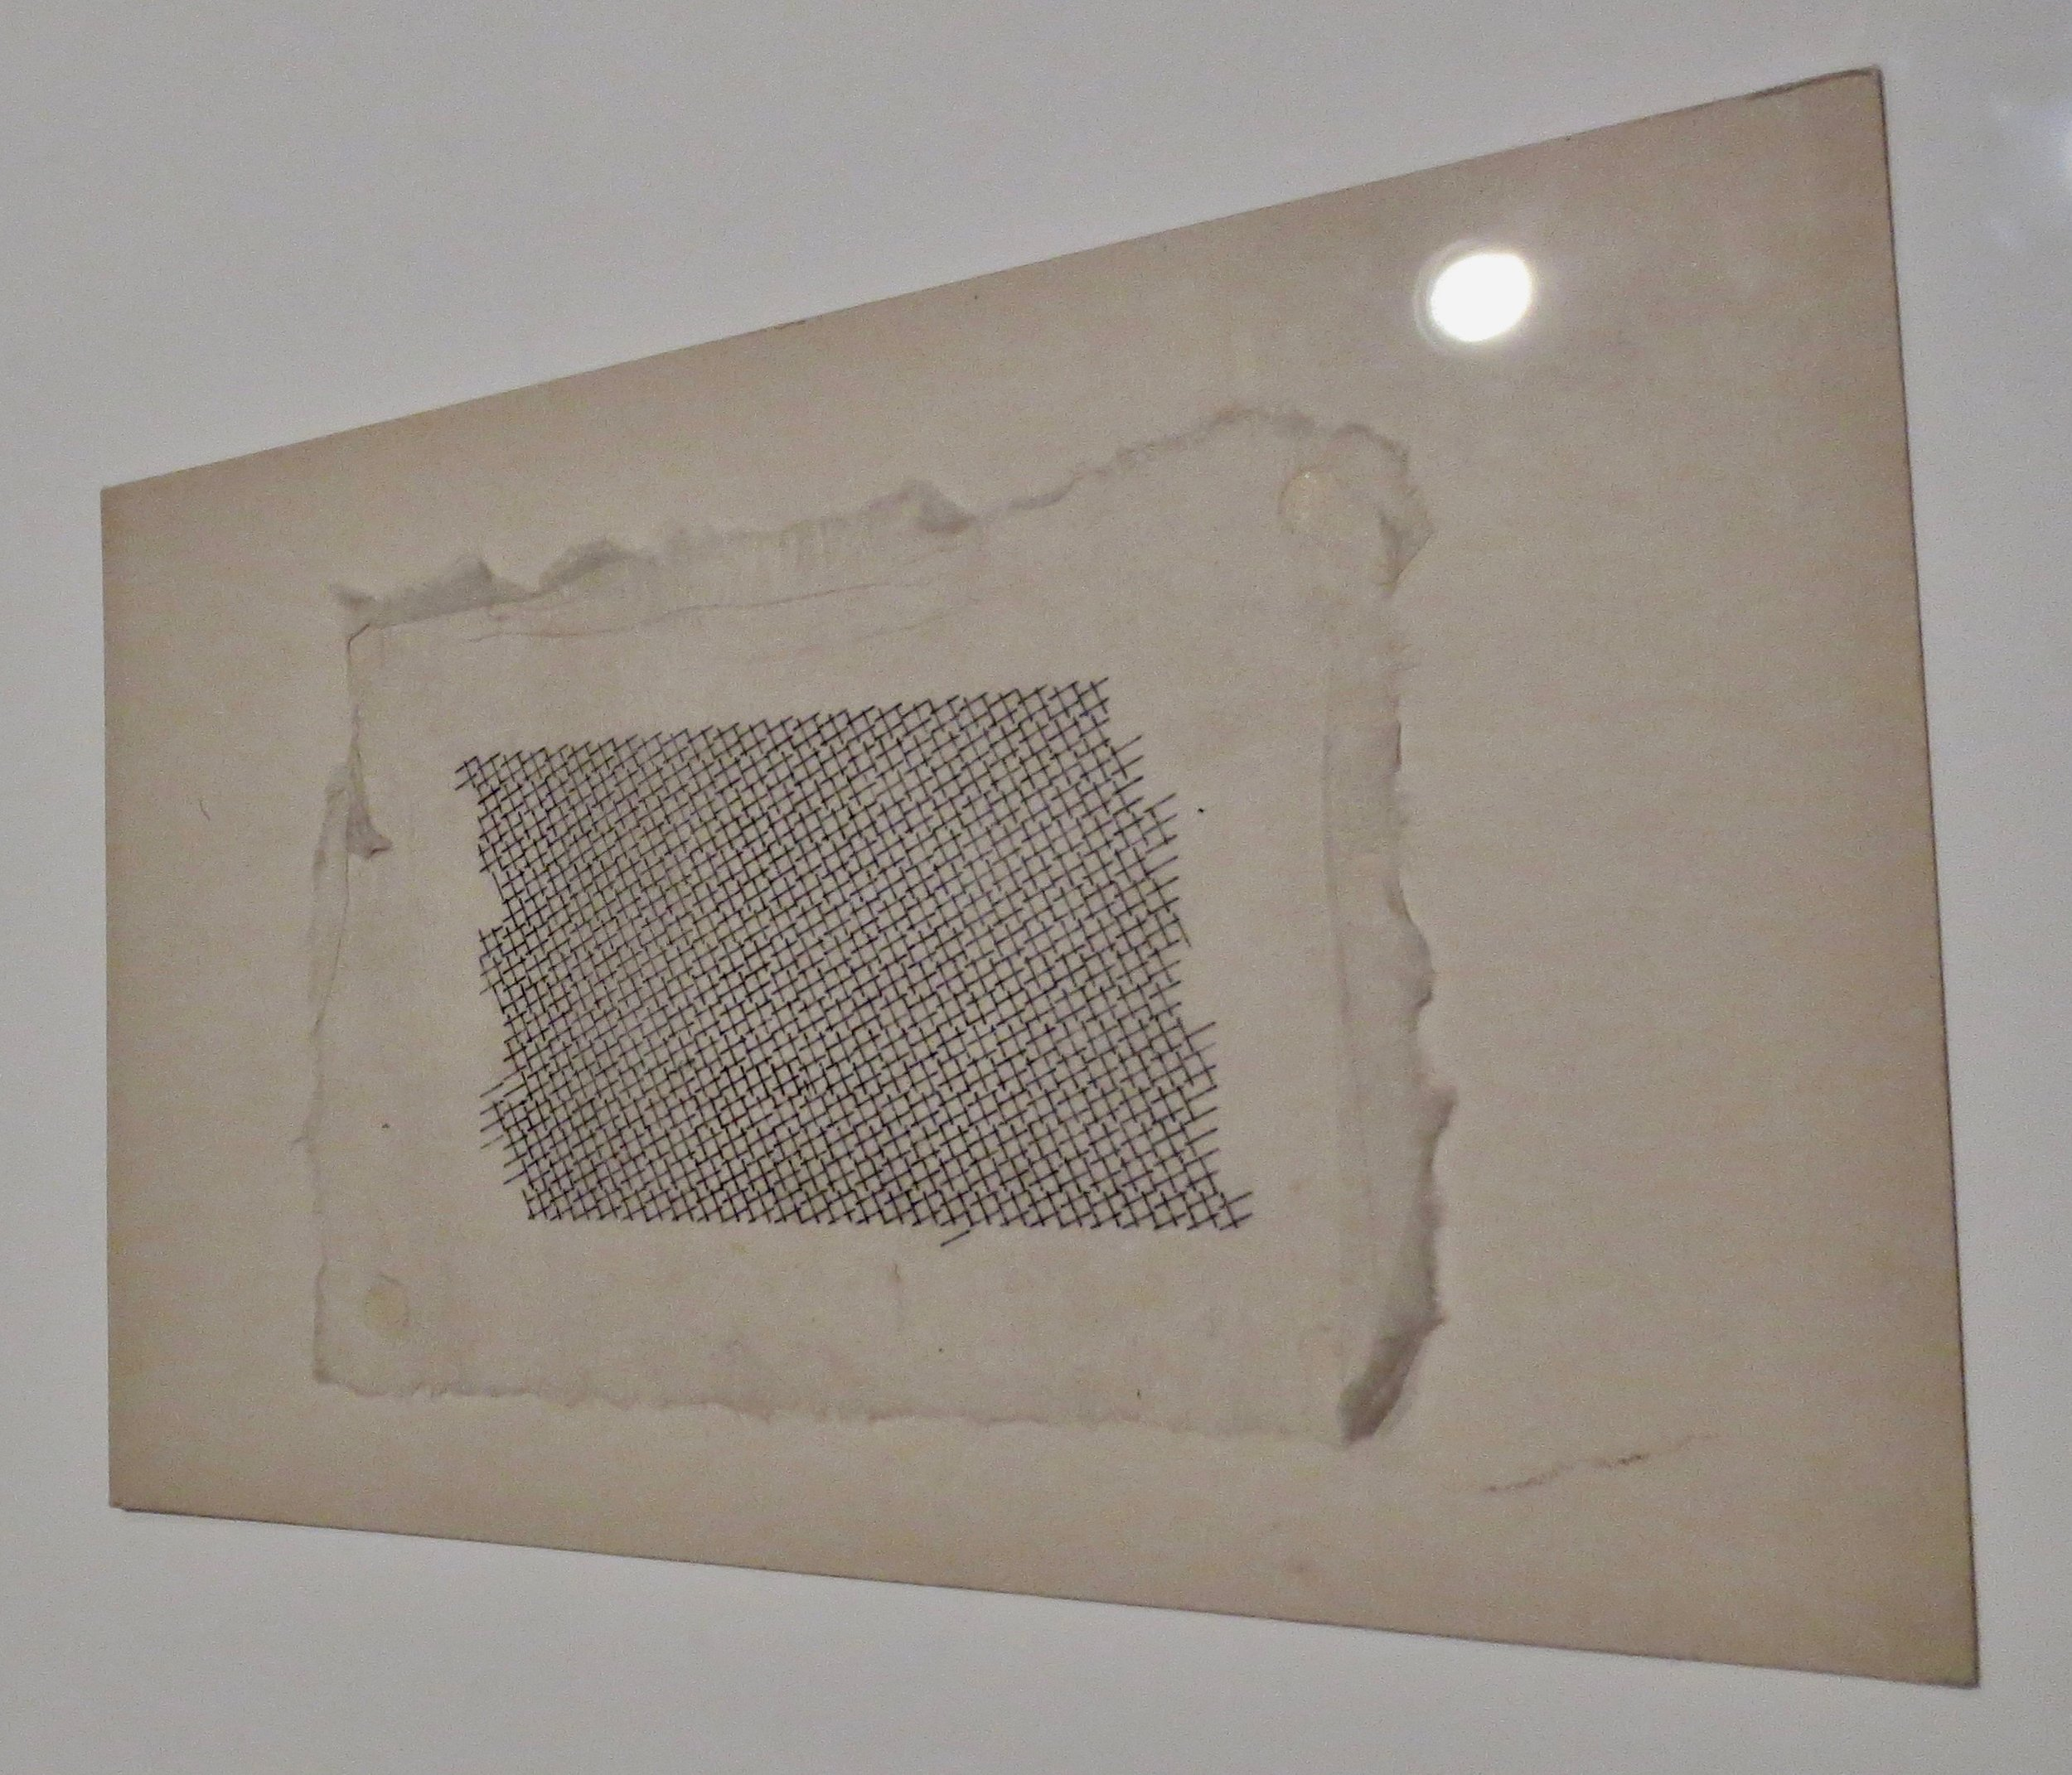 Study made on the typewriter  (n.d.), by Anni Albers; typewriter printing in black ink on paper mounted on board.